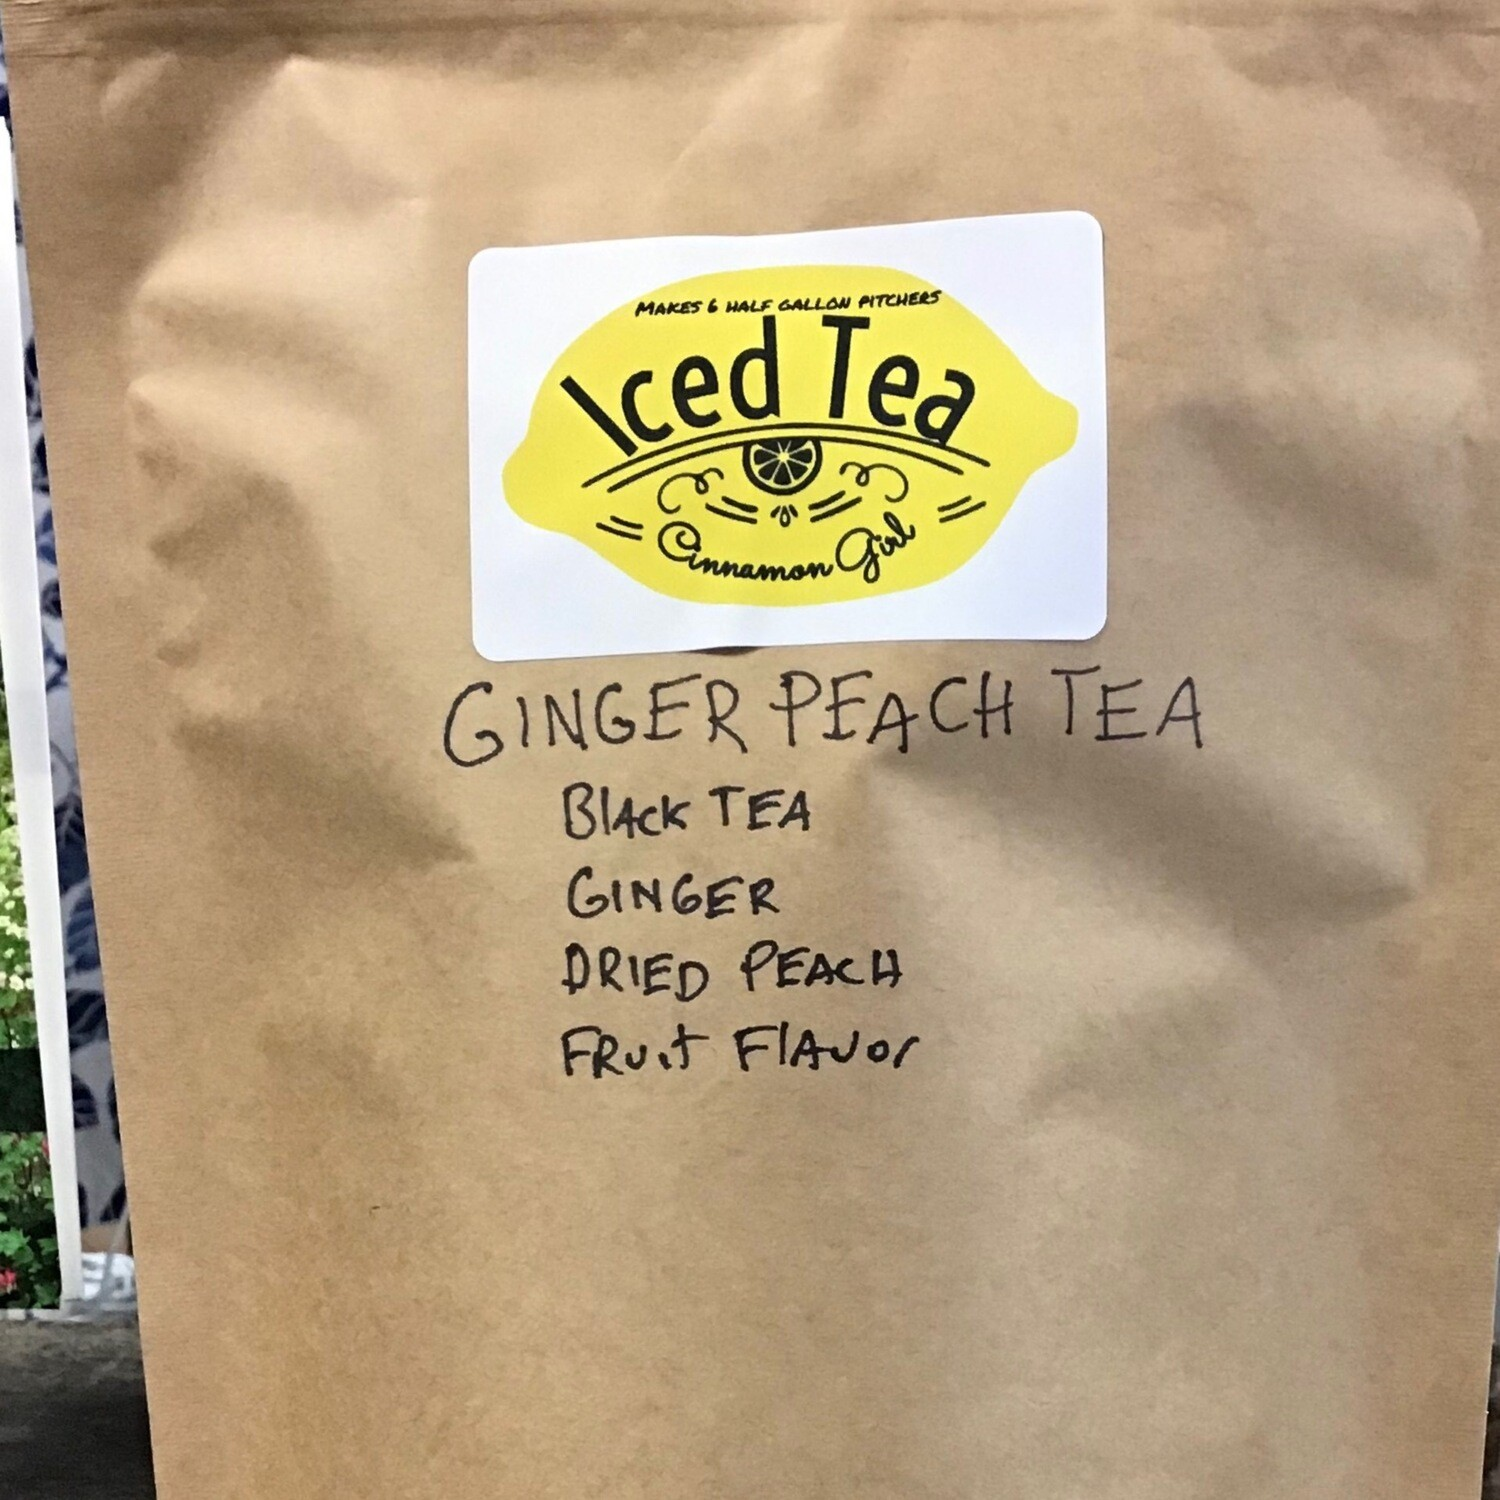 Ginger Peach 6 Iced Tea Pitcher Bags